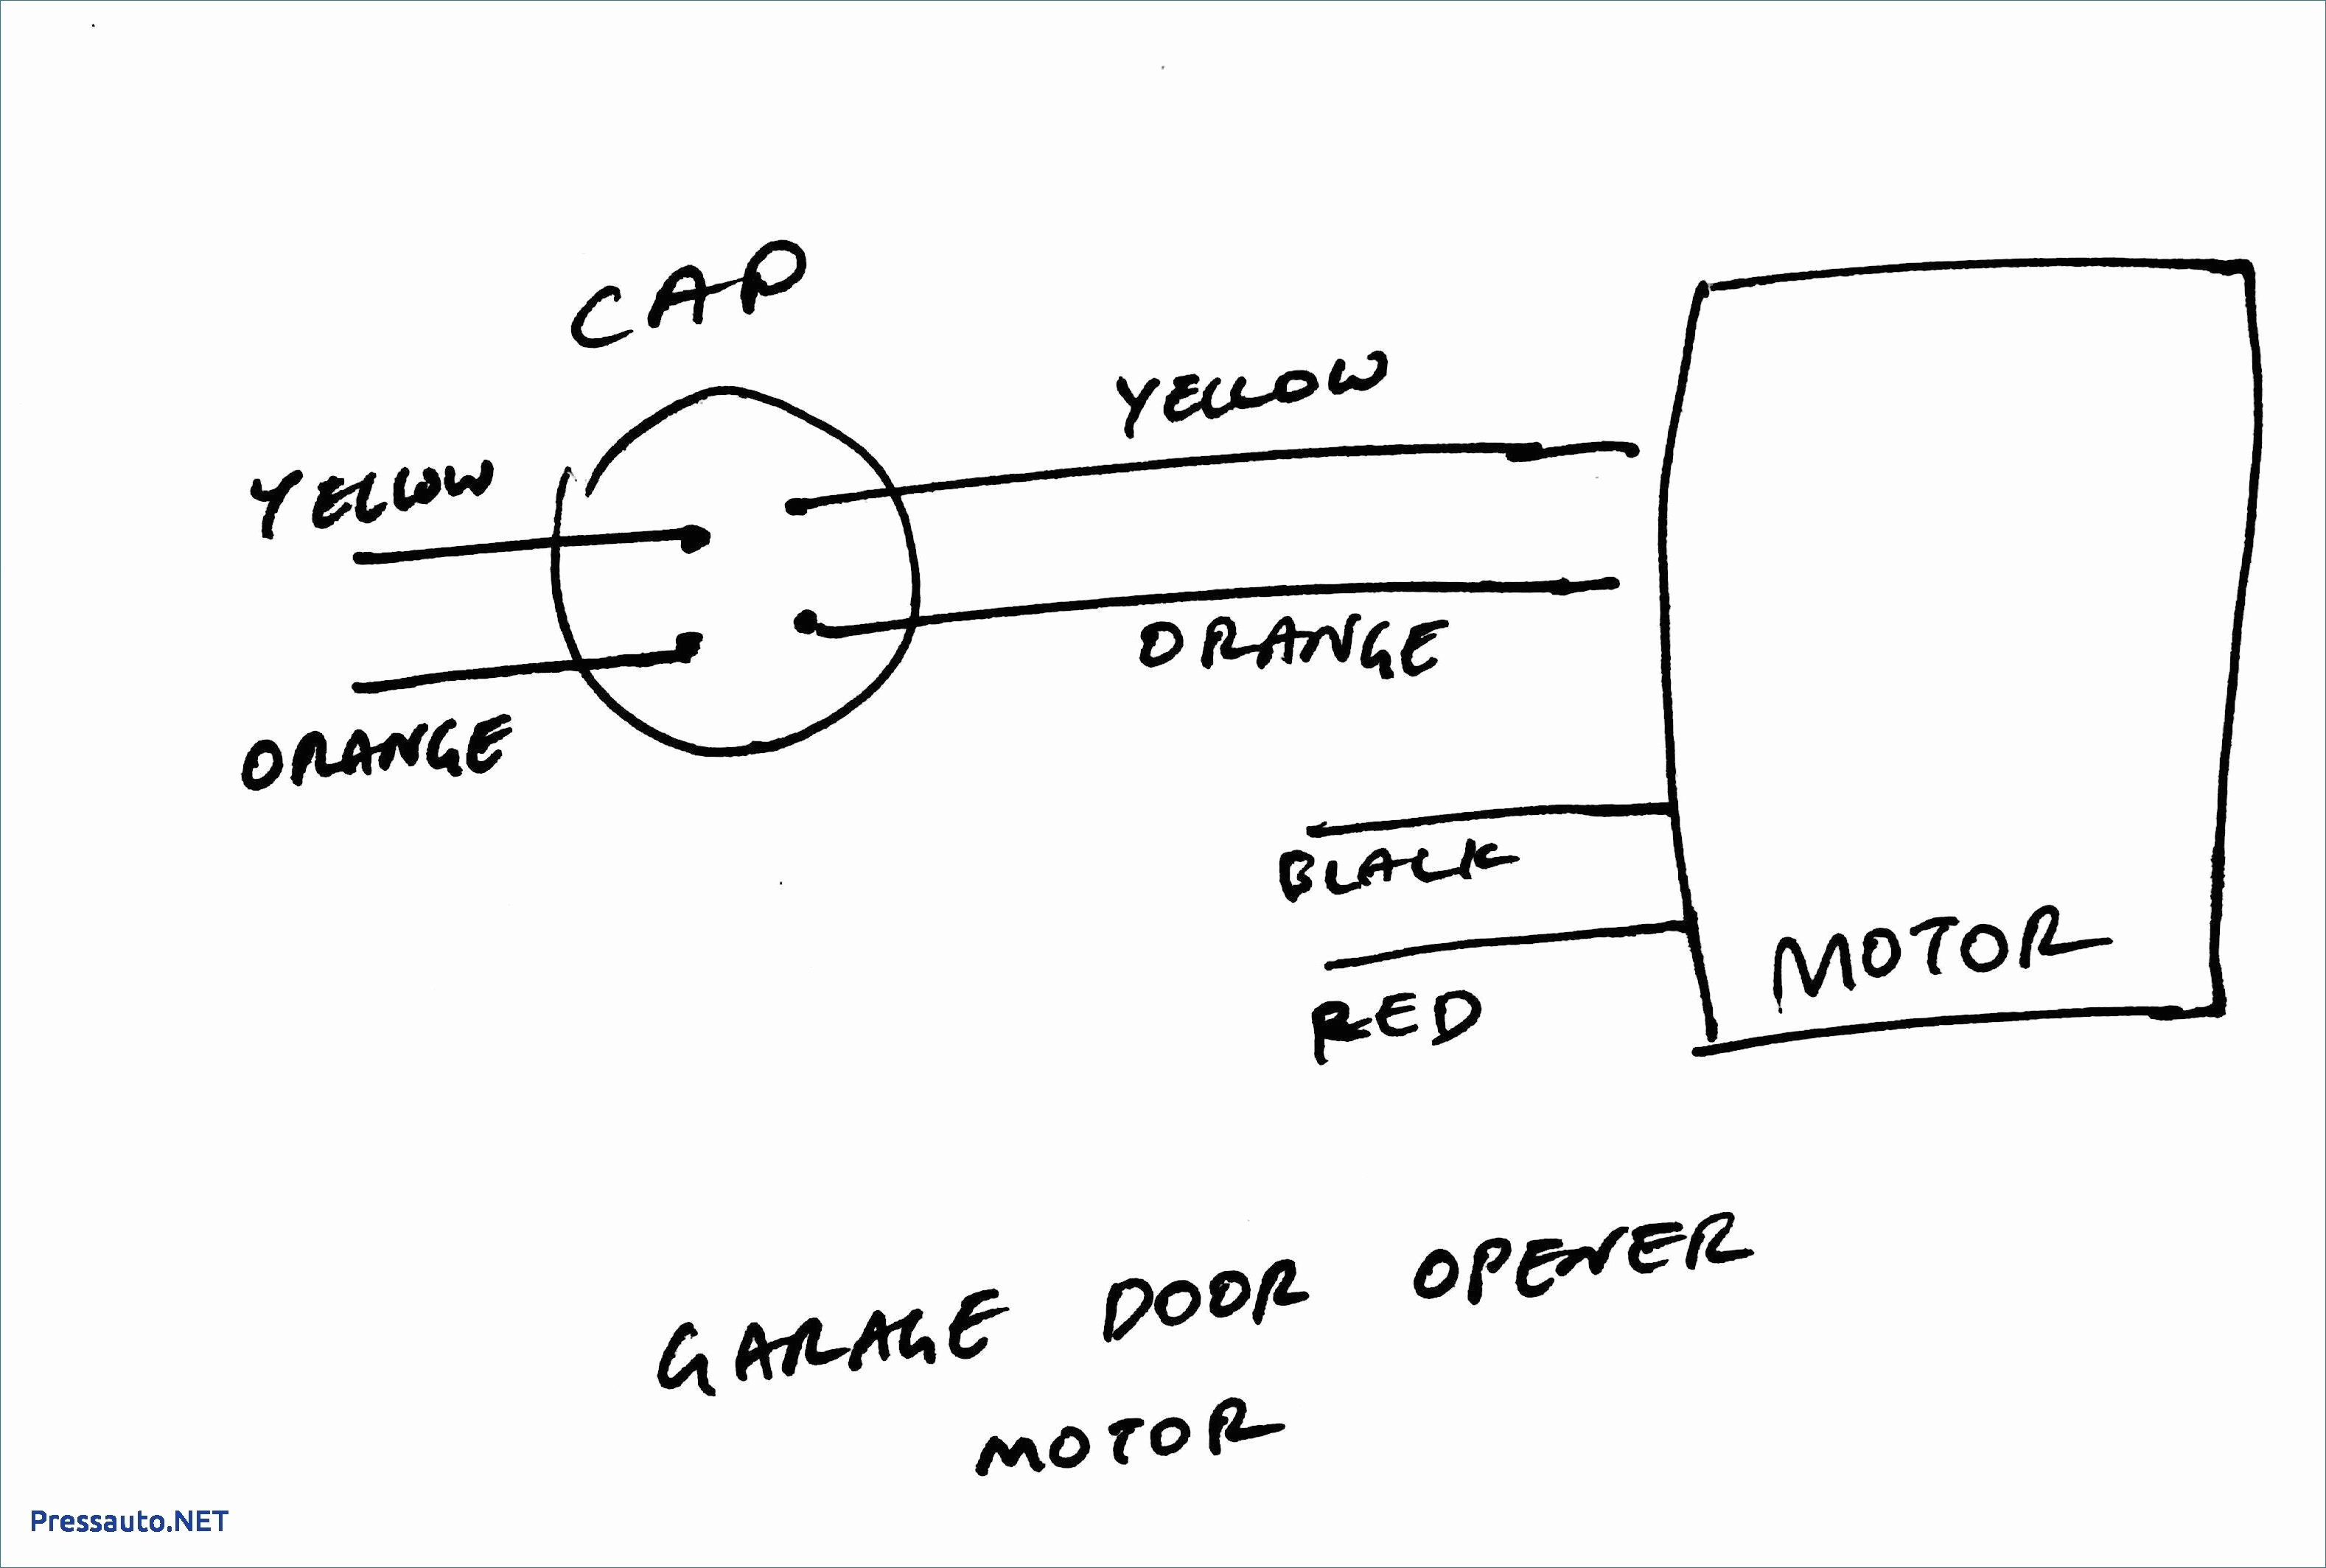 Wiring Diagram Emerson Electric Motor Spl 115 | Wiring Diagram - Emerson Electric Motors Wiring Diagram